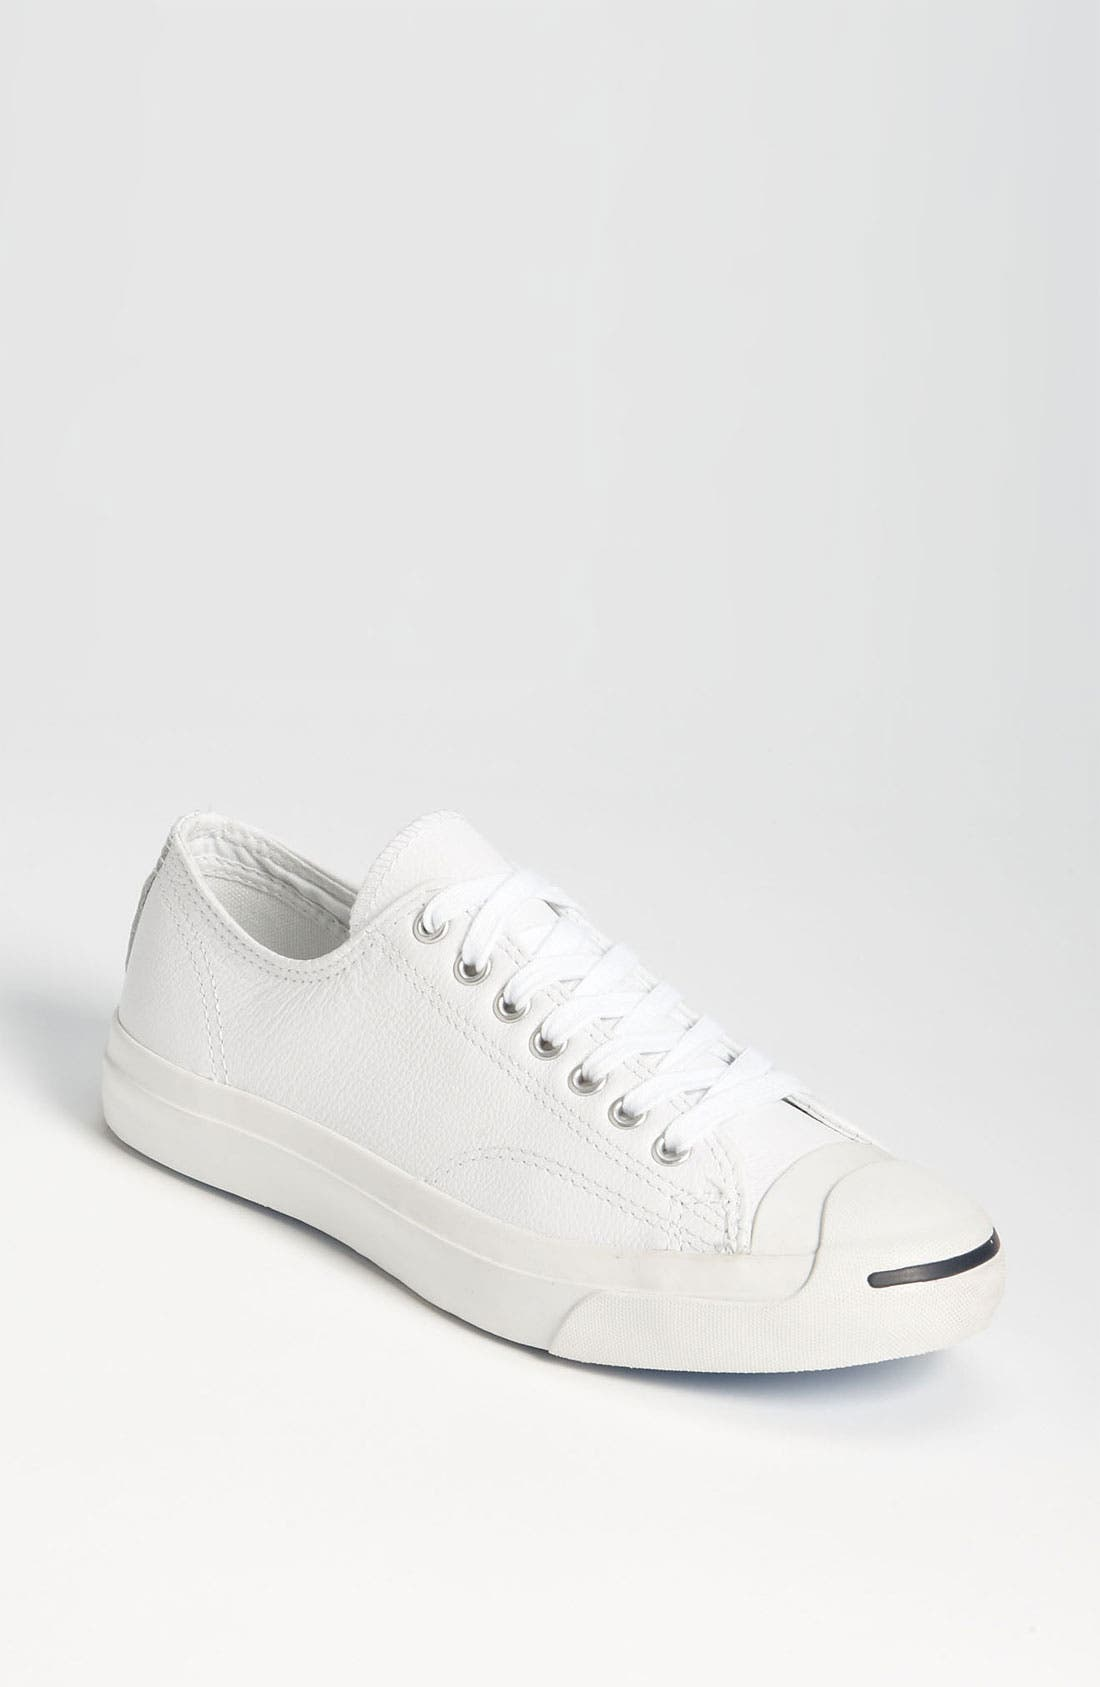 'Jack Purcell' Leather Sneaker,                             Main thumbnail 1, color,